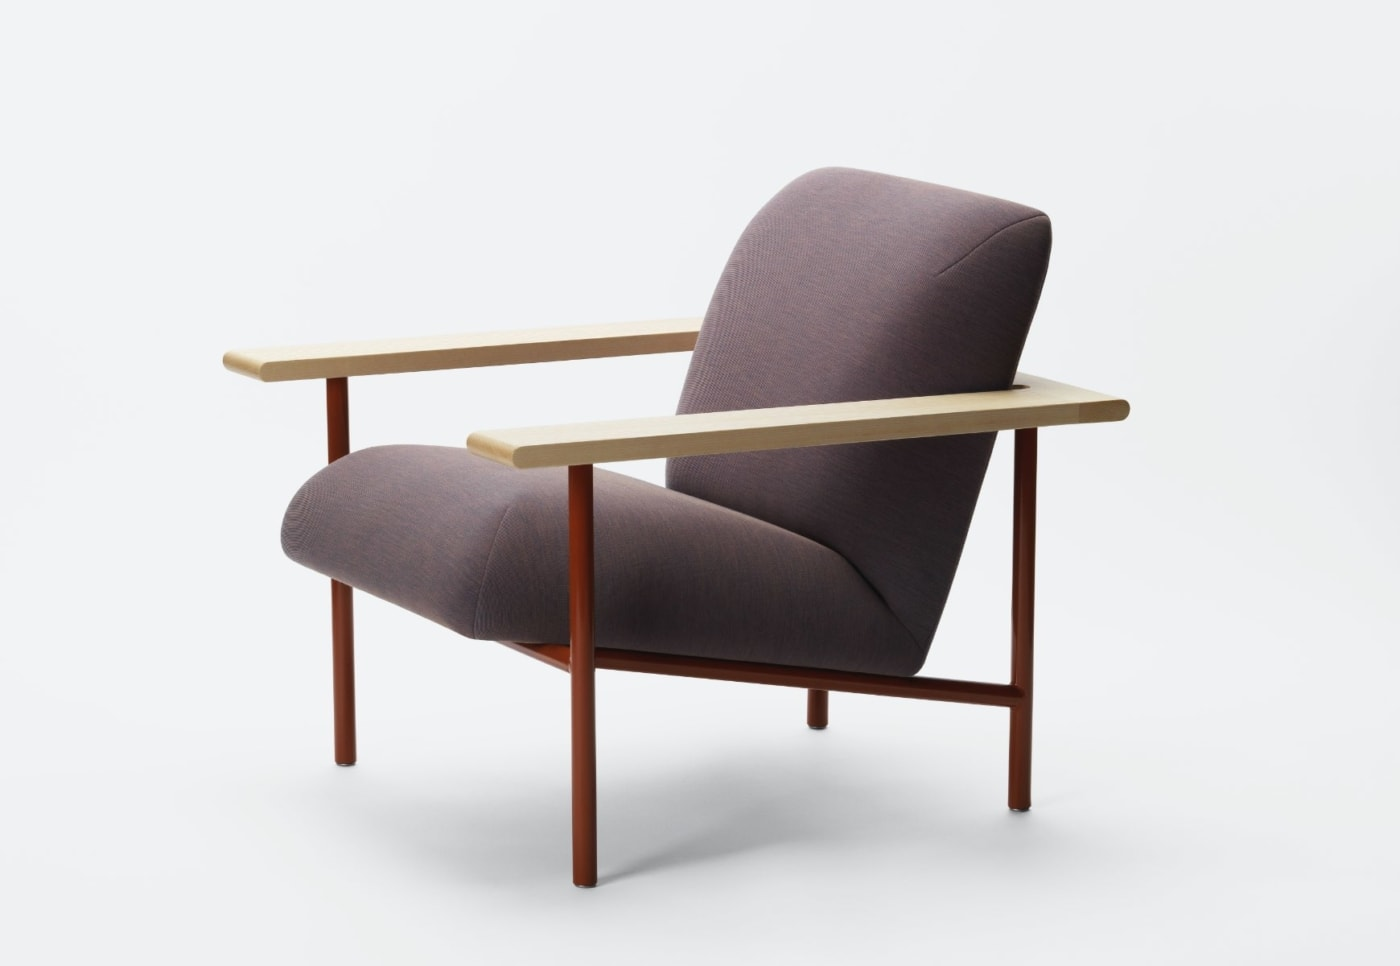 Furniture Design by London Studio Mentsen Top 1